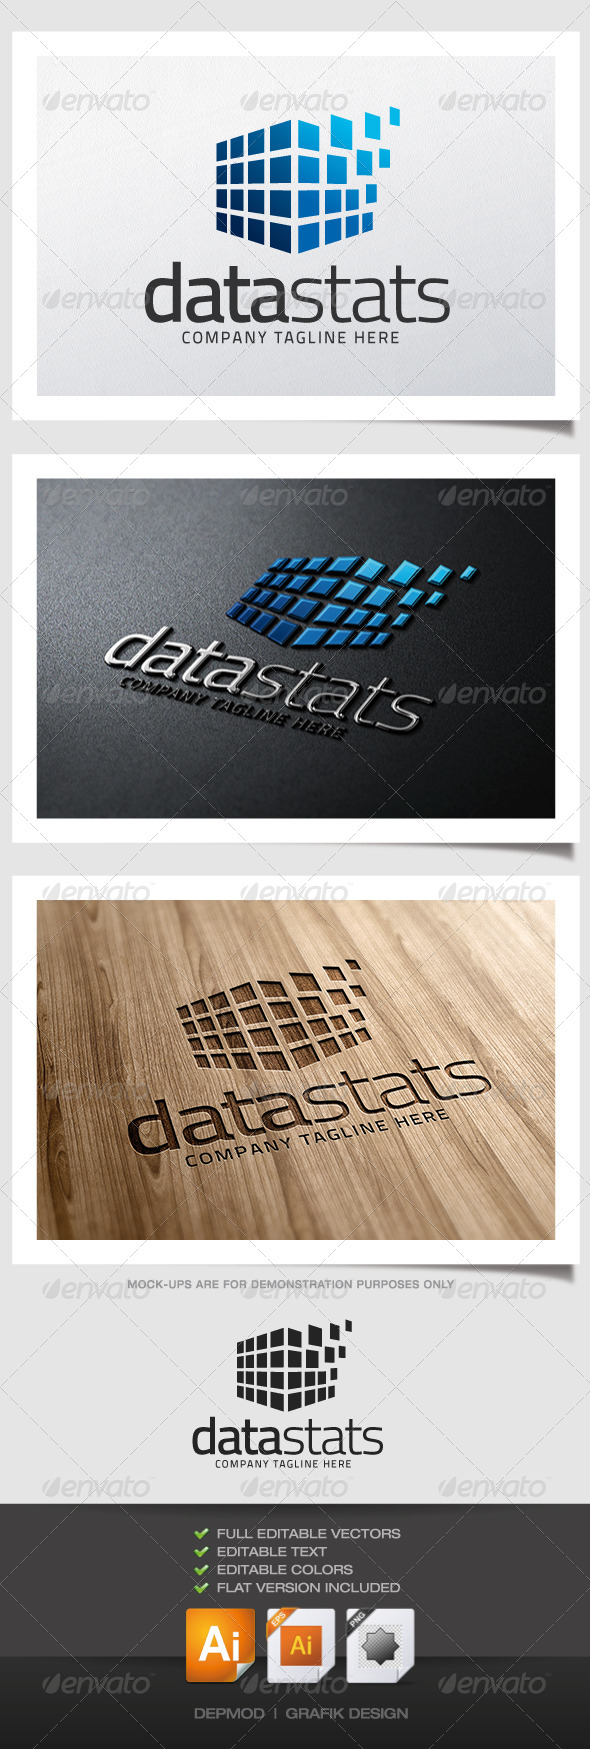 GraphicRiver Data Stats Logo 5115743